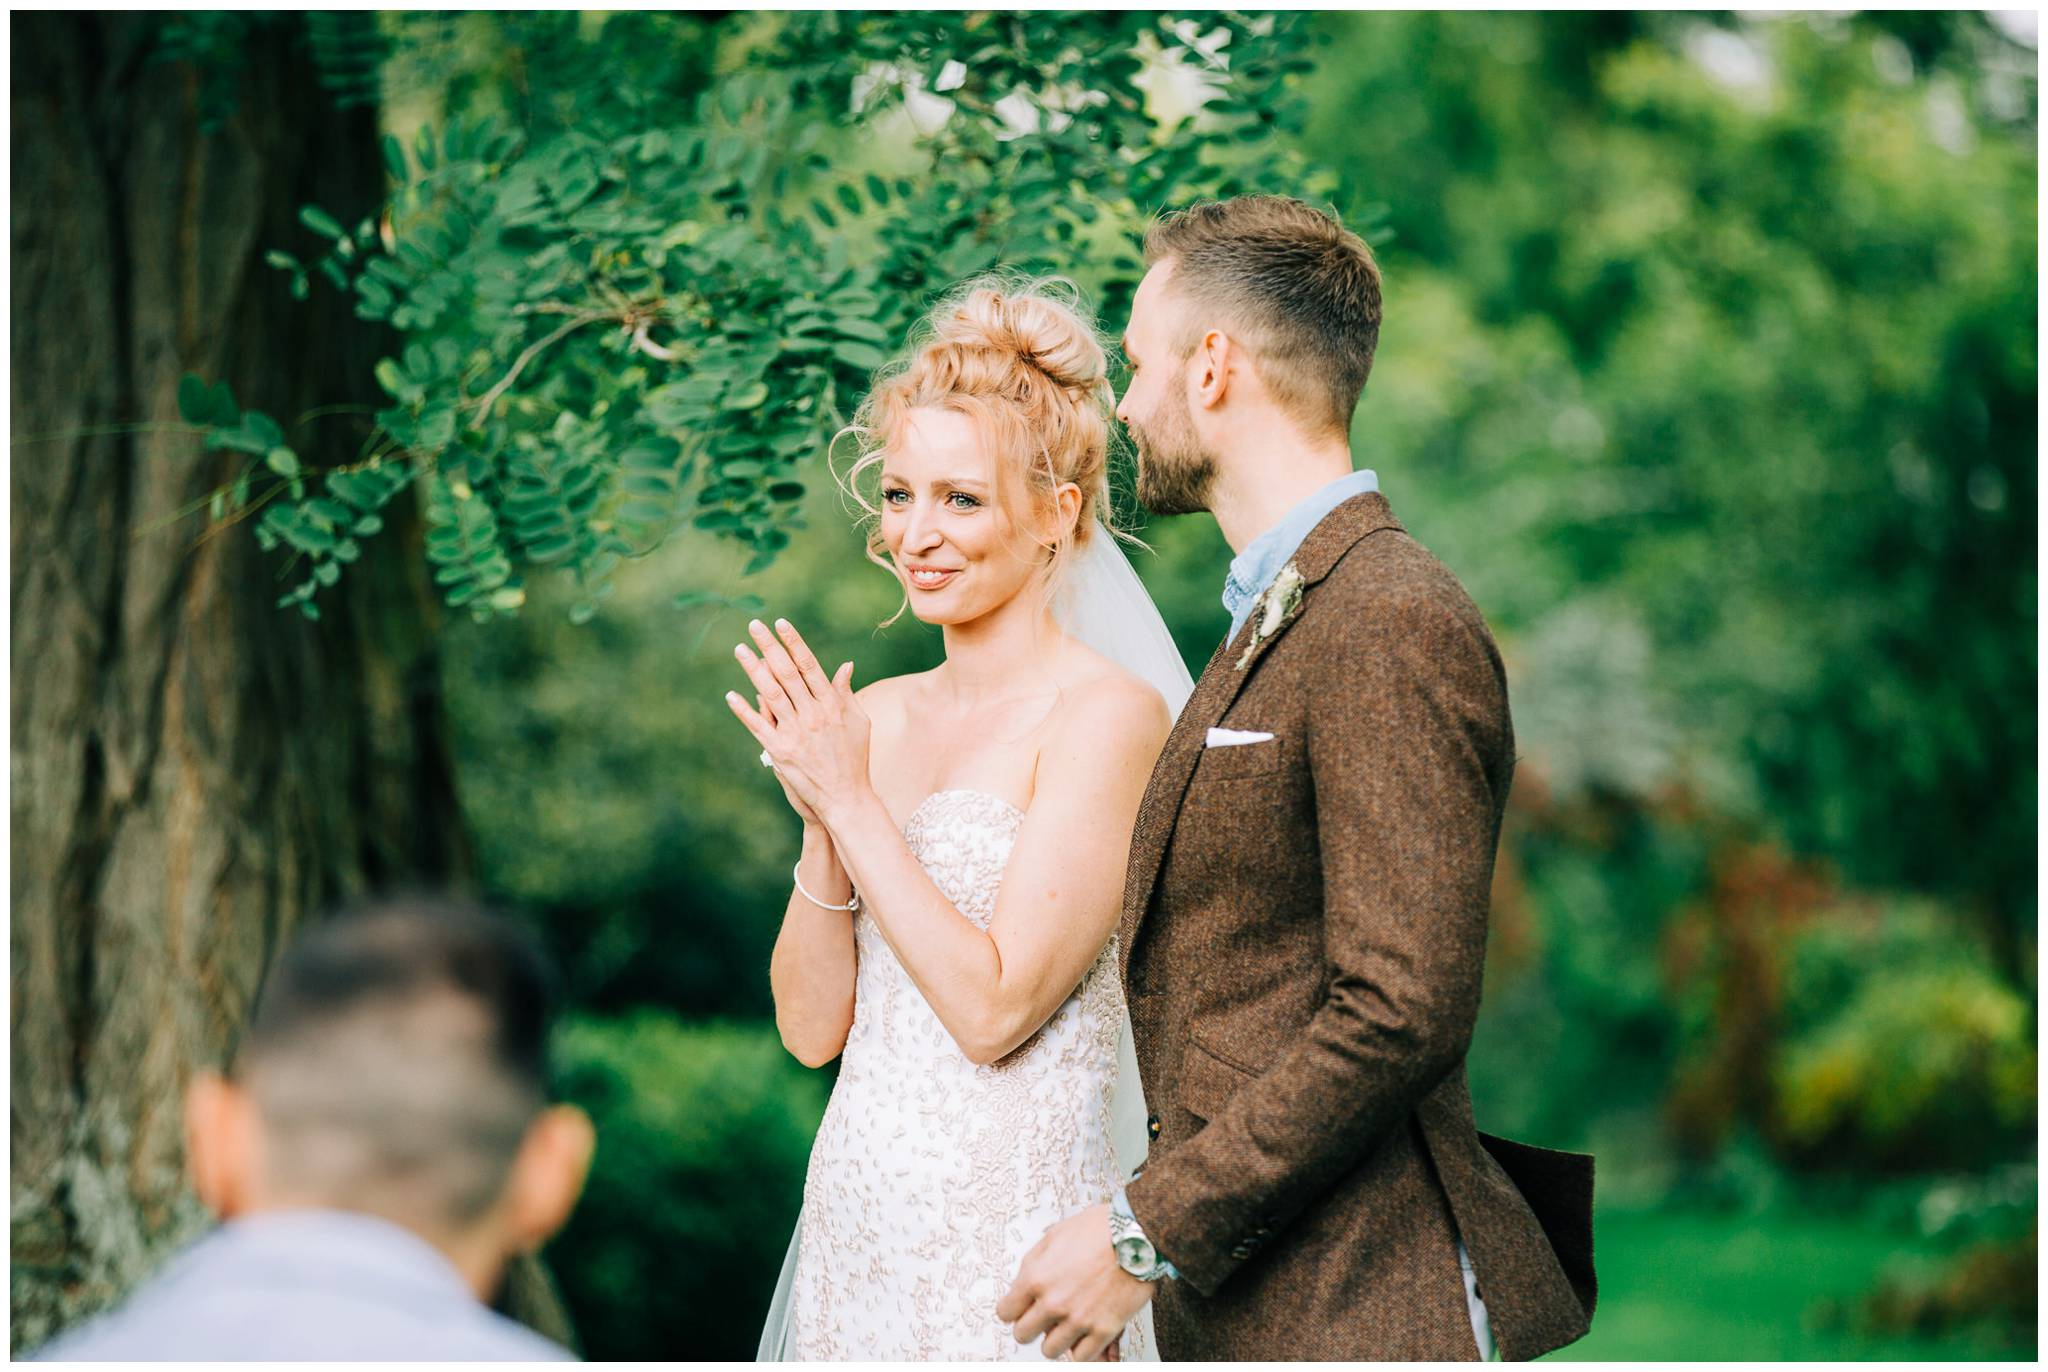 Natural wedding photography Manchester - Clare Robinson Photography_0264.jpg